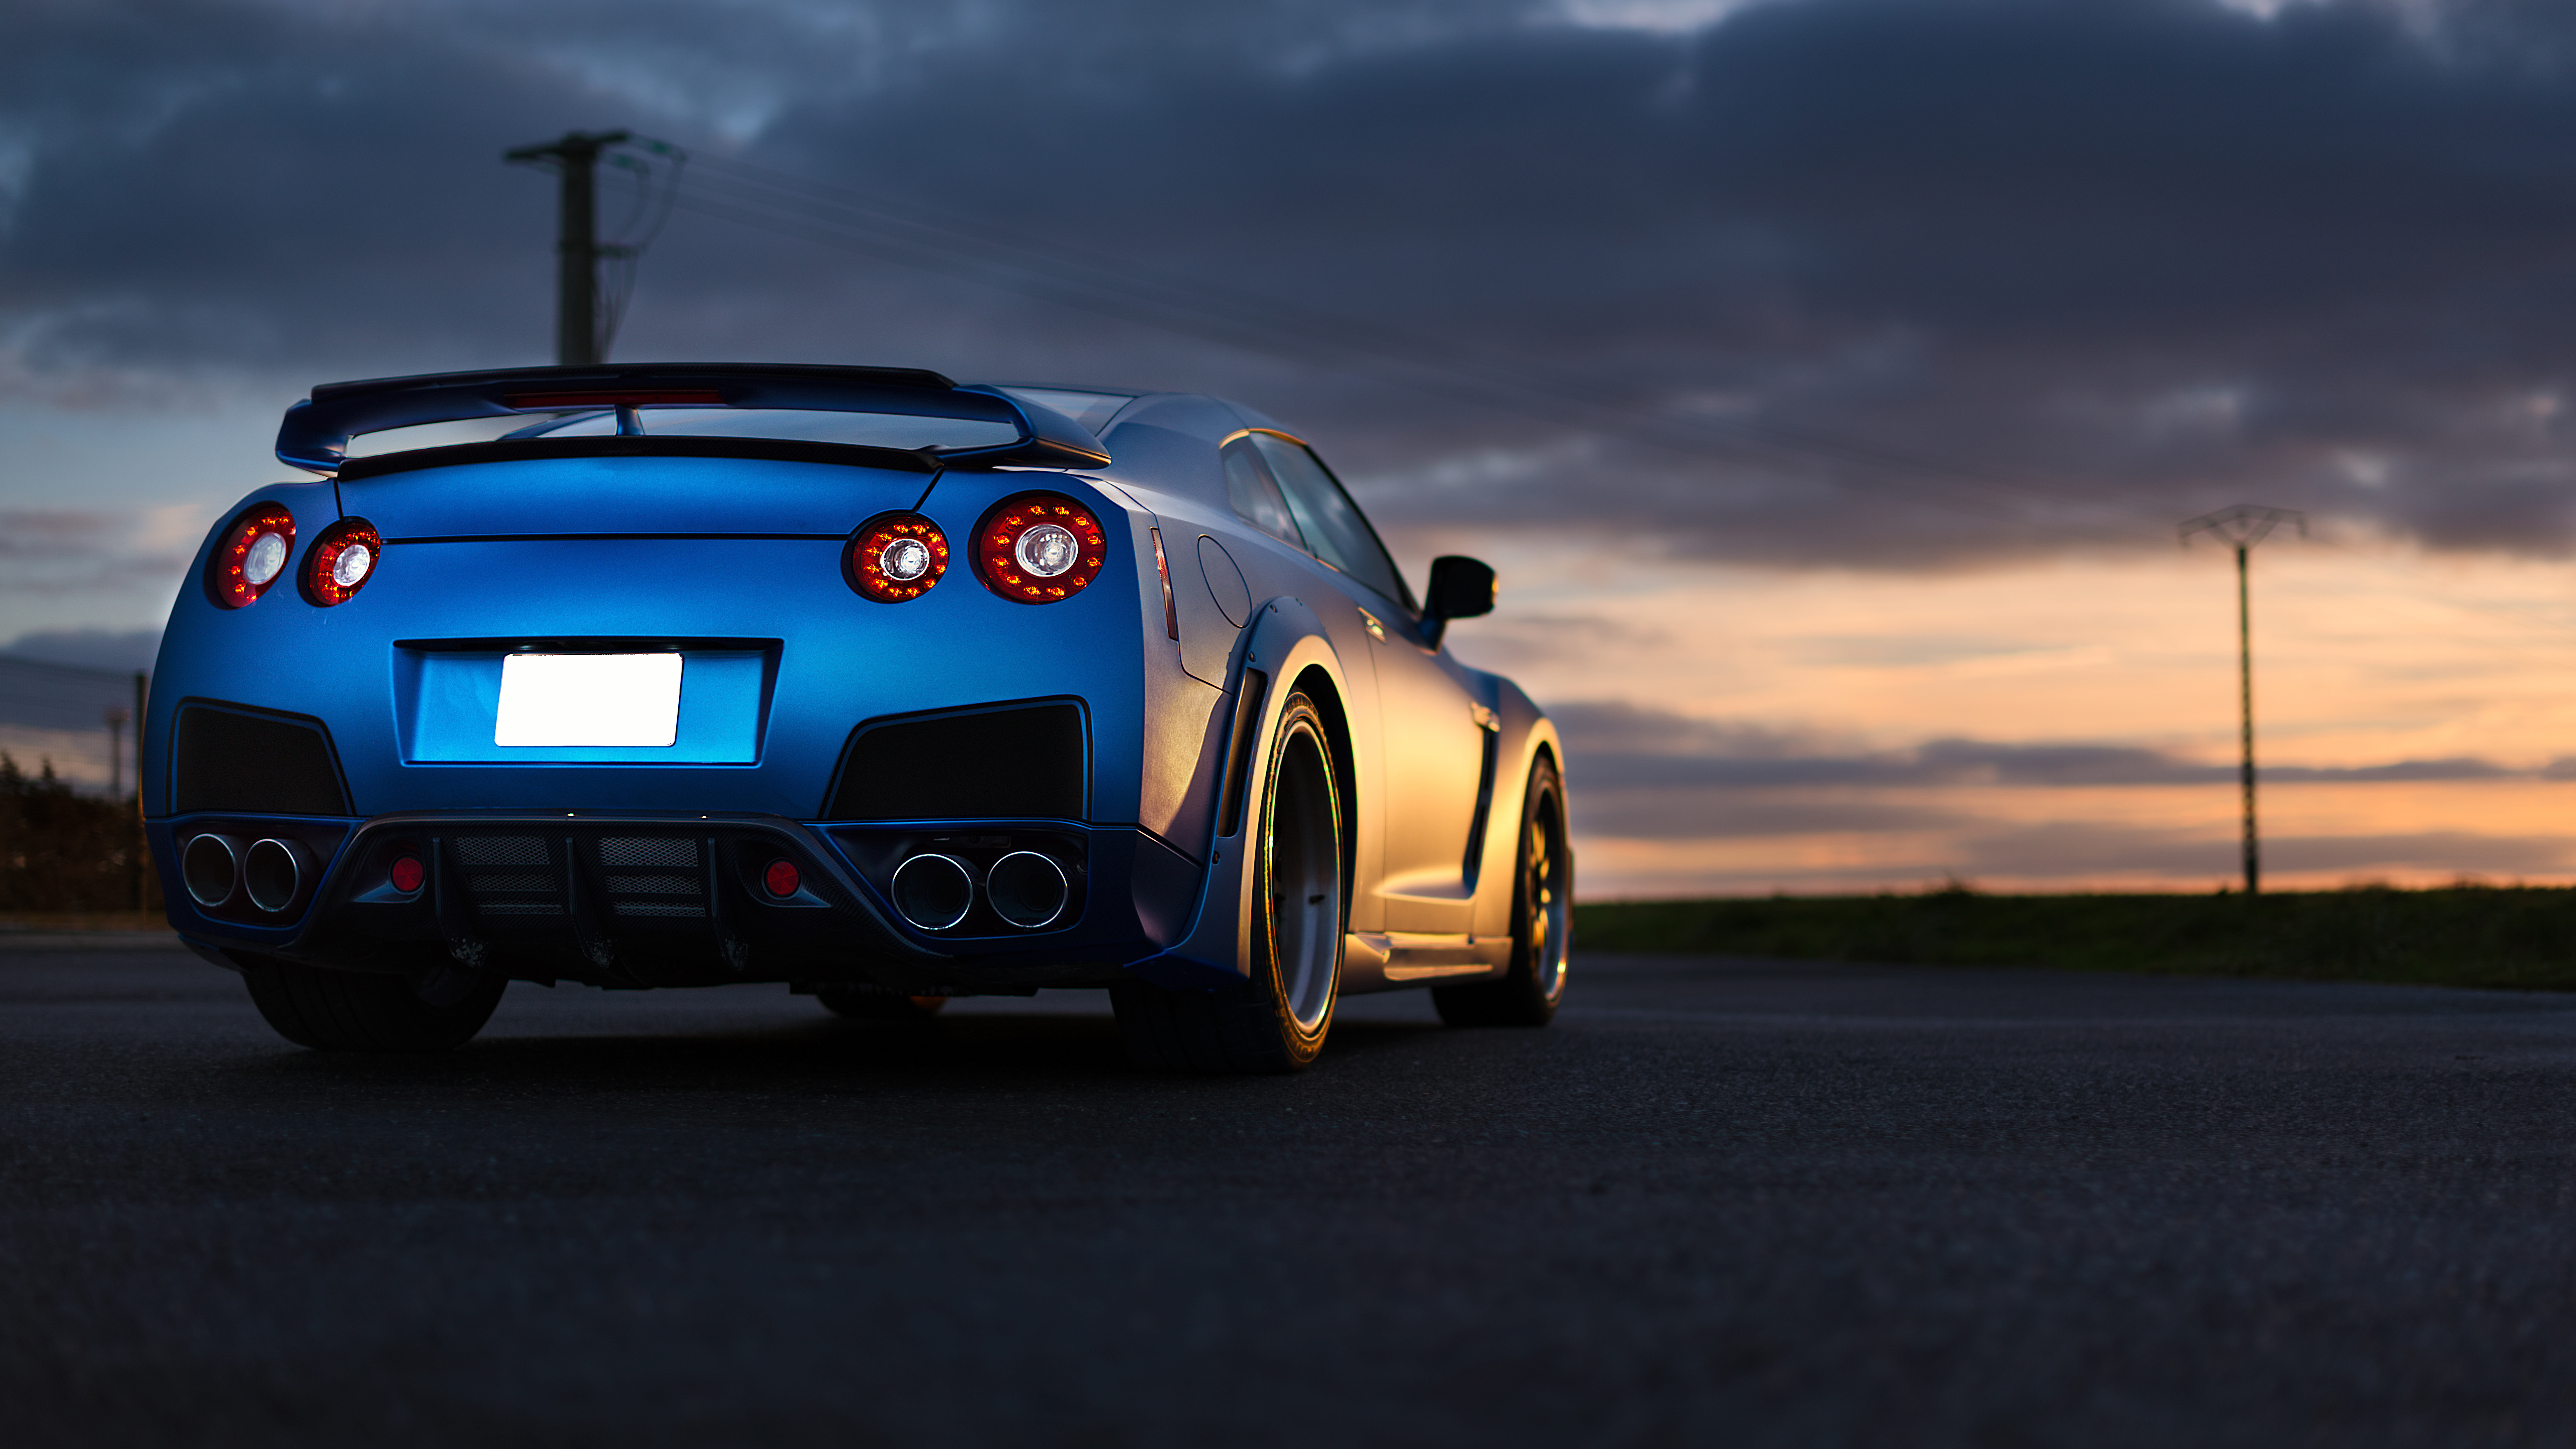 1680x1050 hd wallpaper nissan gtr hd wallpaper nissan gtr cars background. 1366x768 Nissan Gtr 8k 1366x768 Resolution Hd 4k Wallpapers Images Backgrounds Photos And Pictures